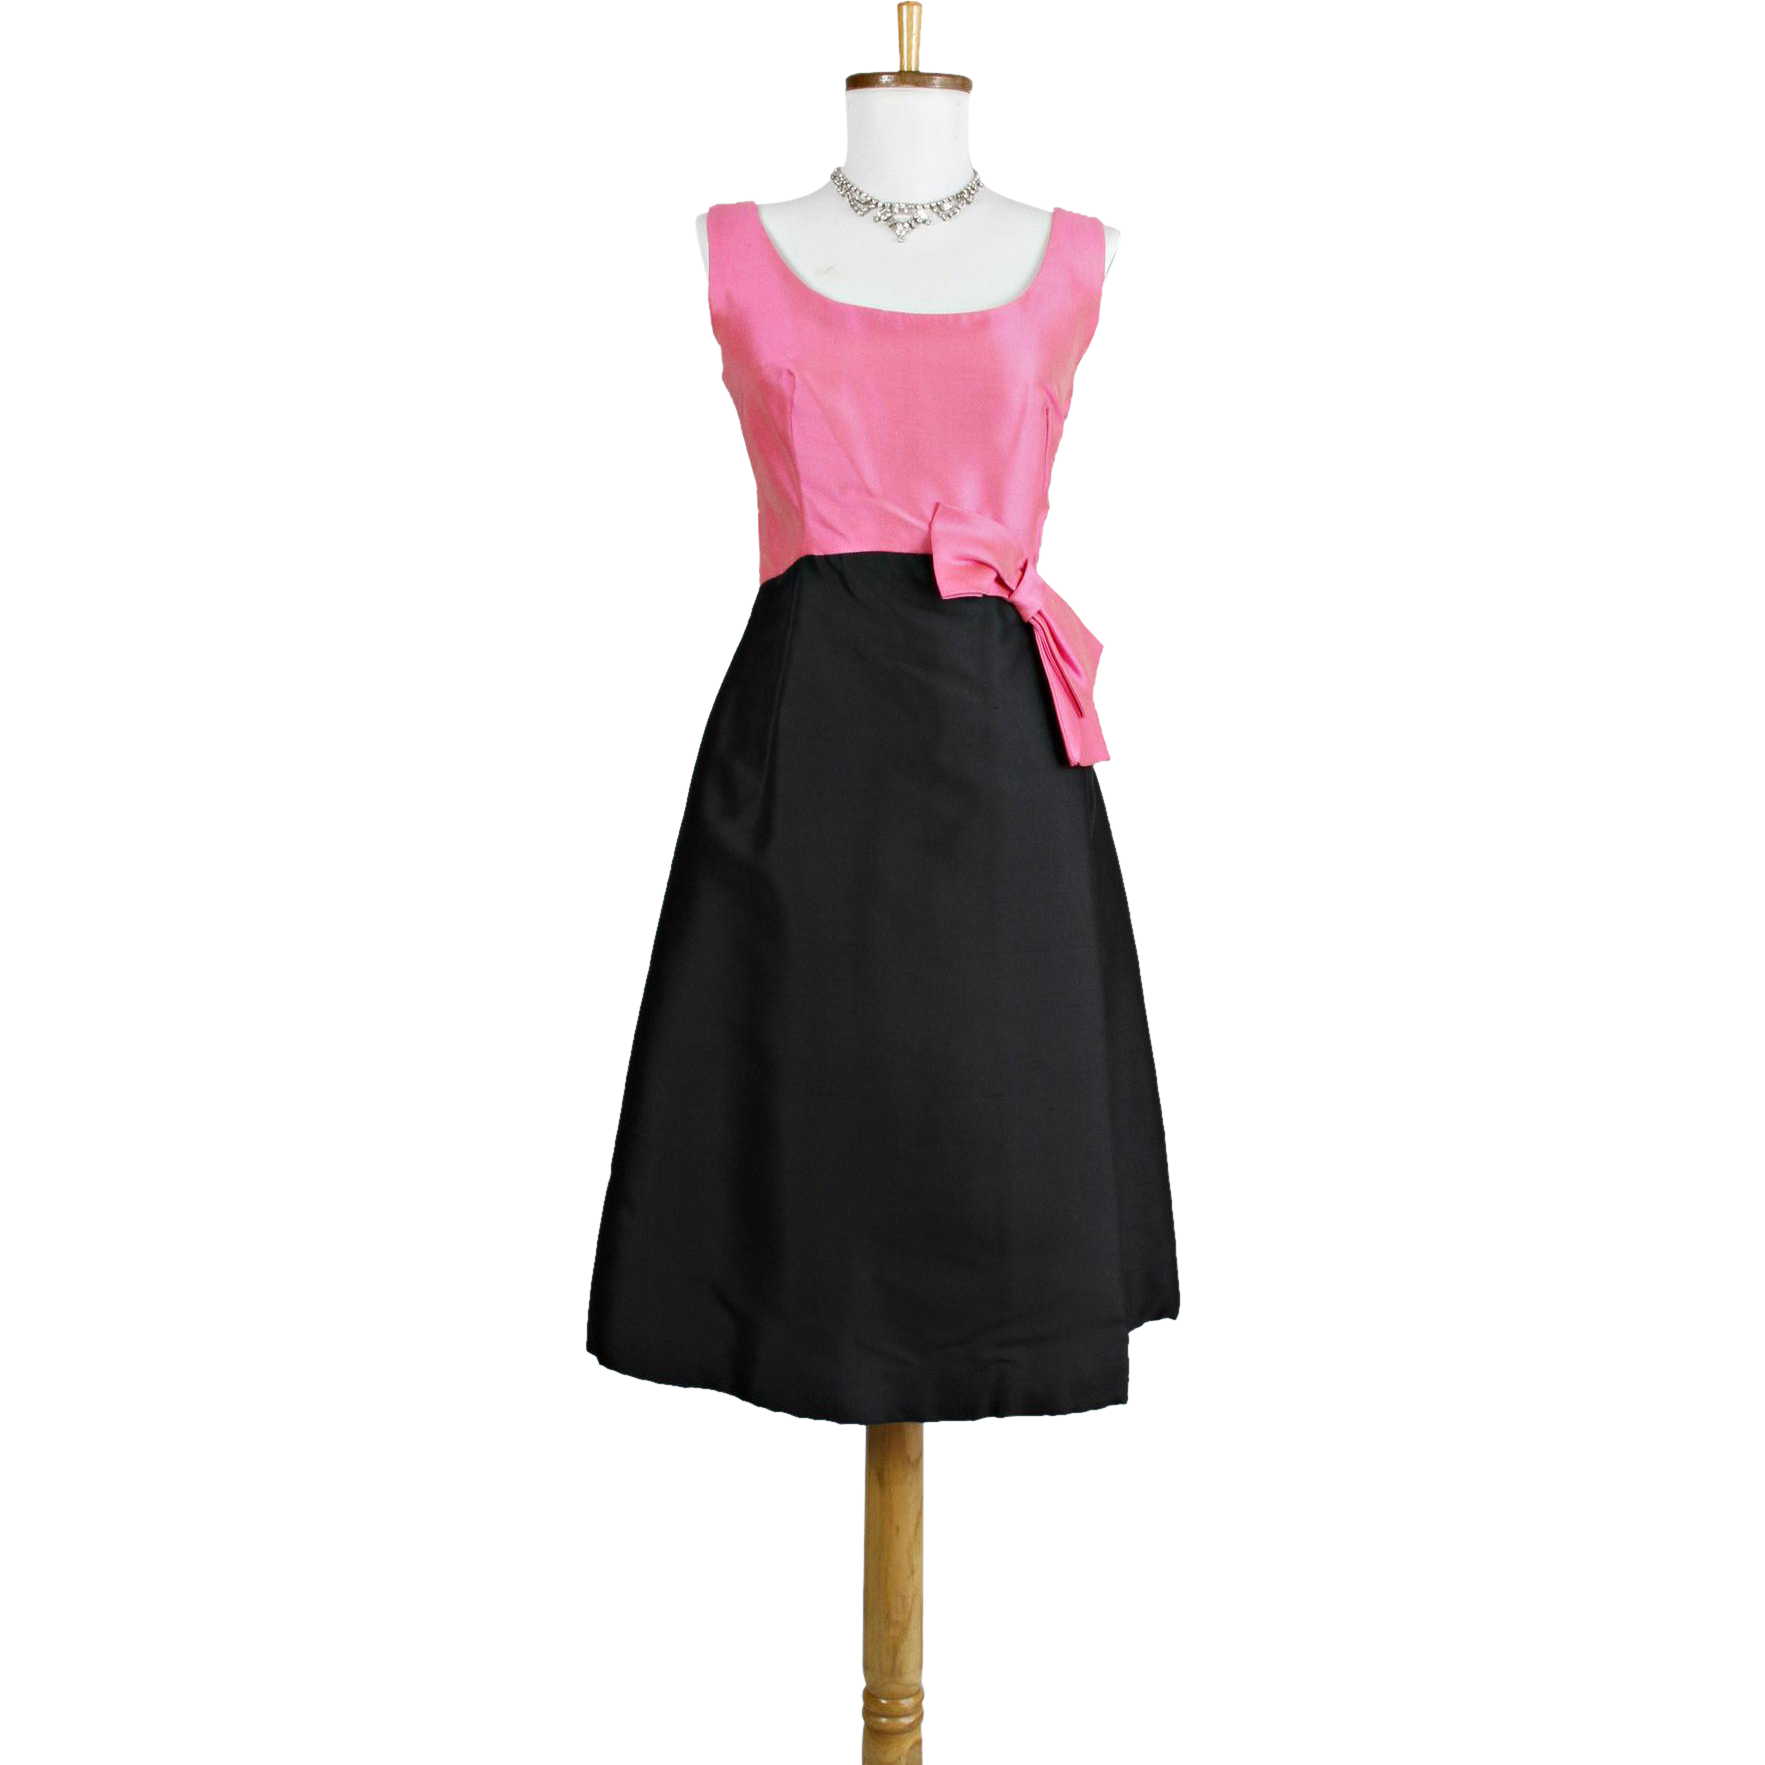 Vintage 1960s Pink and Black Silk Cocktail Dress with bow at the waistline